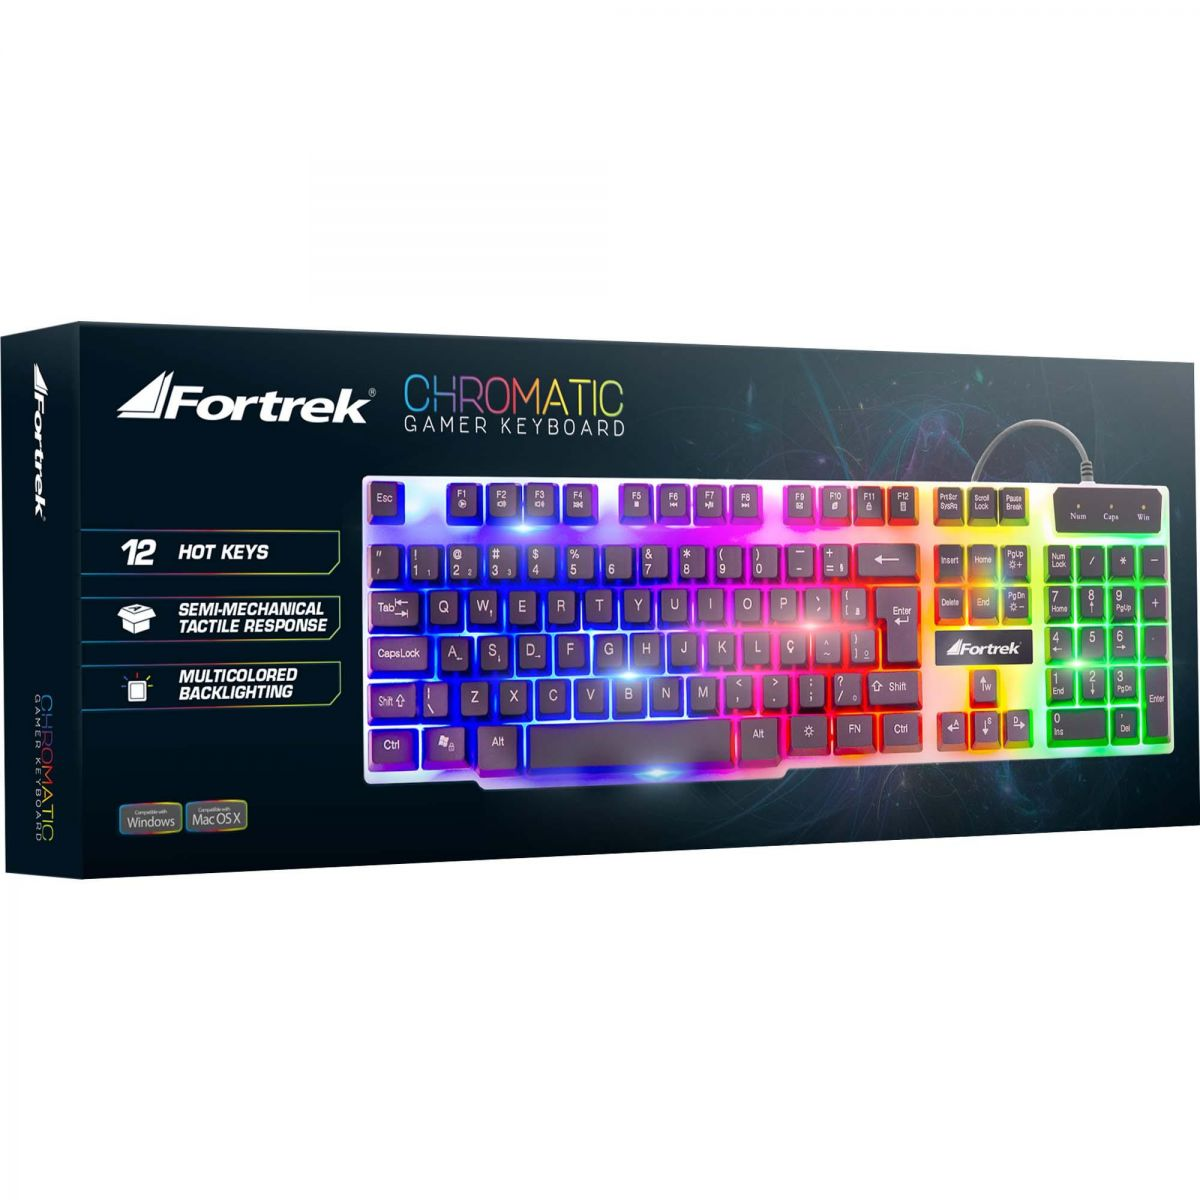 Teclado Fortrek Gamer Multimídia Chromatic GK-710 - 61364